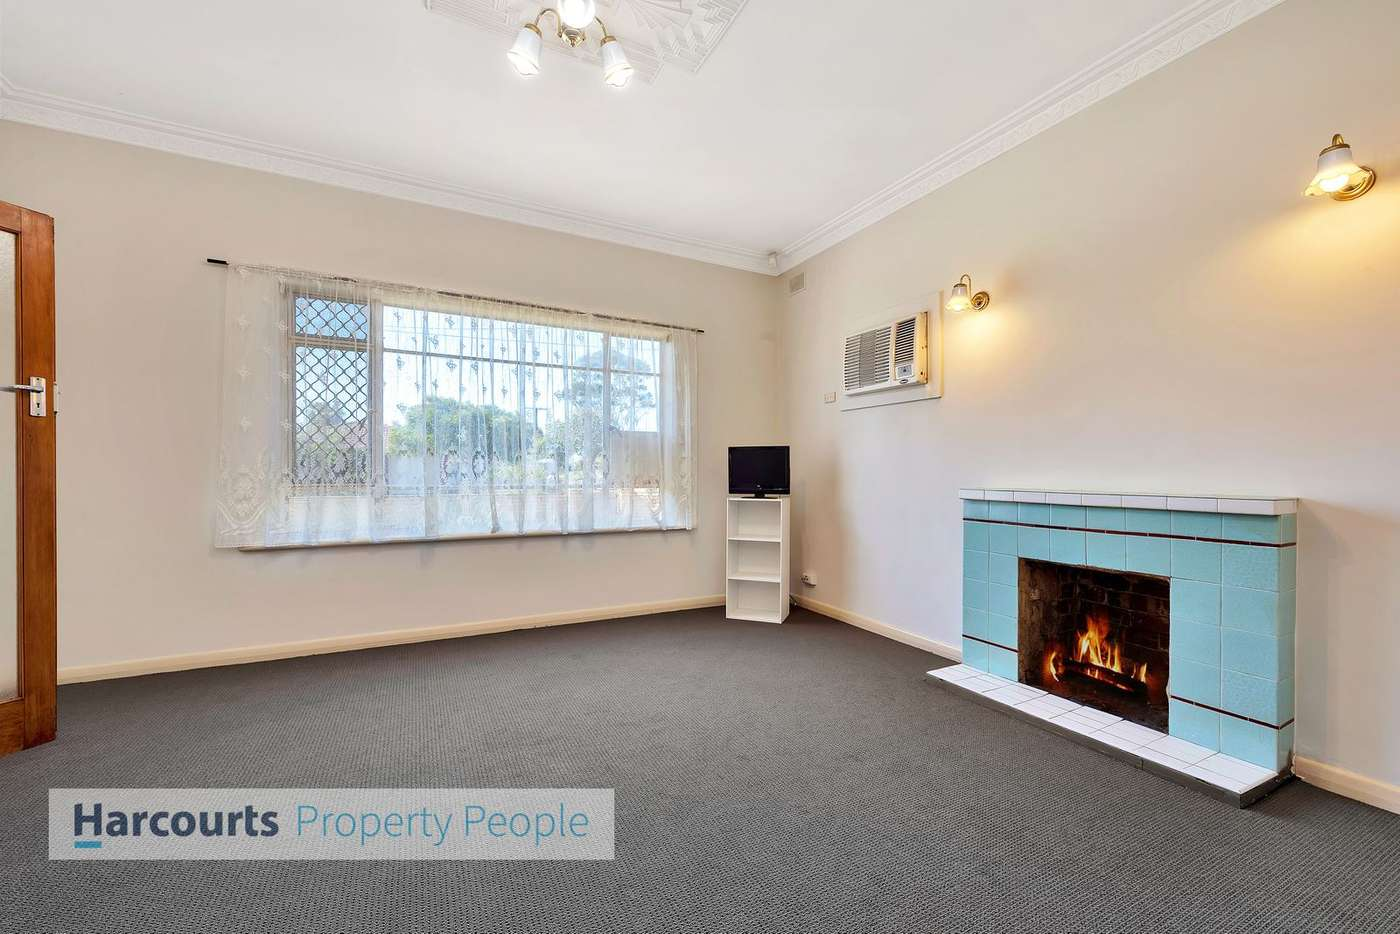 Sixth view of Homely house listing, 77 Hookings Terrace, Woodville Gardens SA 5012